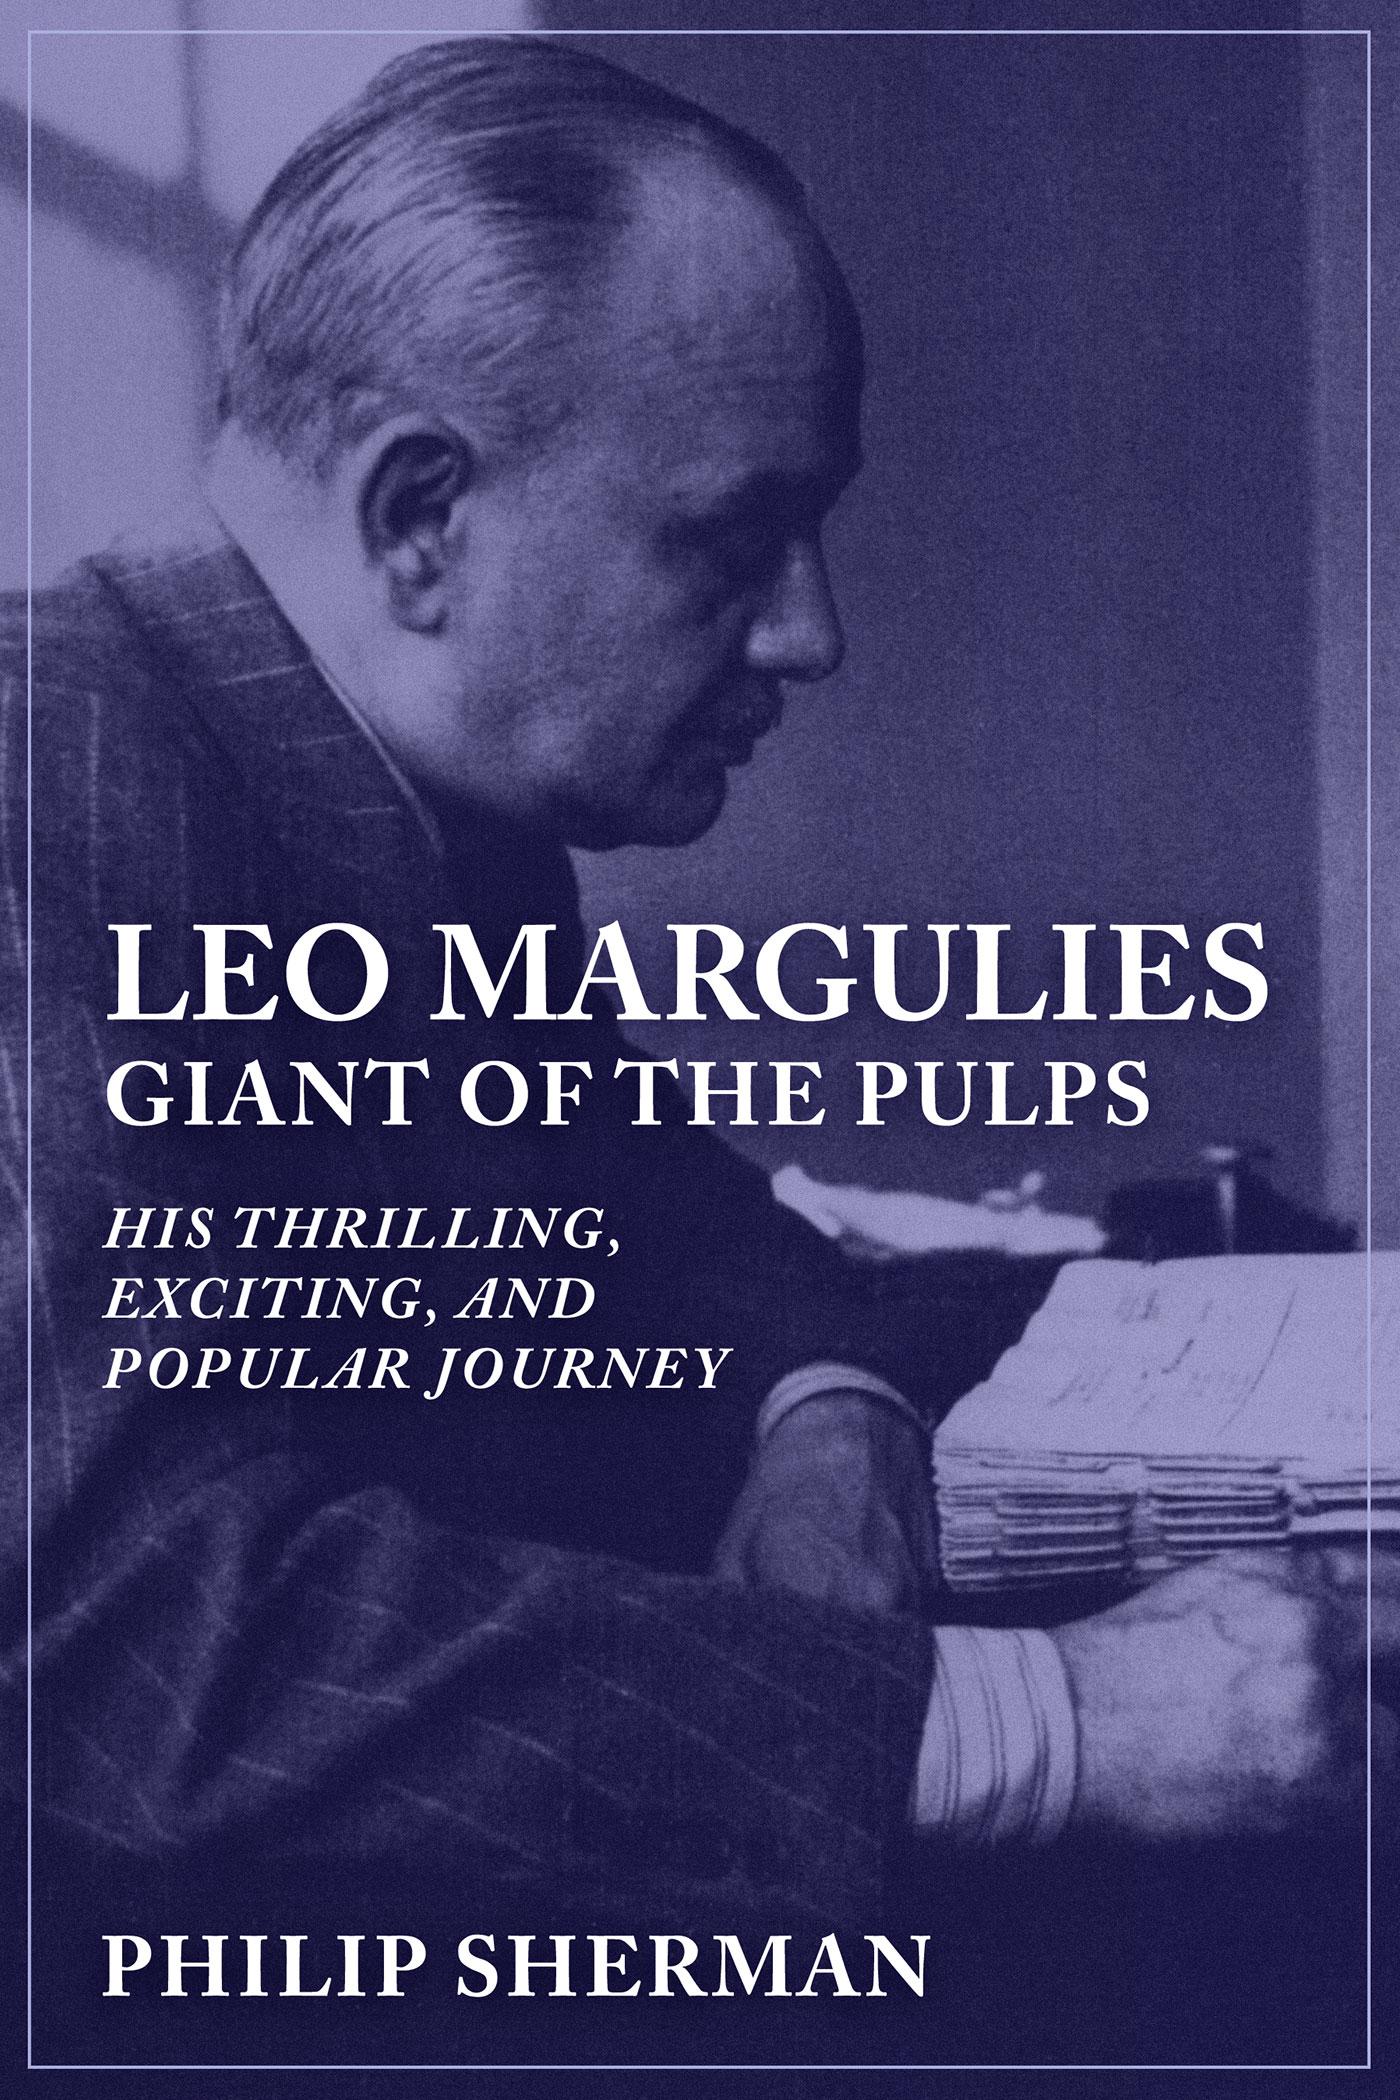 Leo Margulies: Giant of the Pulps—His Thrilling, Exciting, and Popular Journey